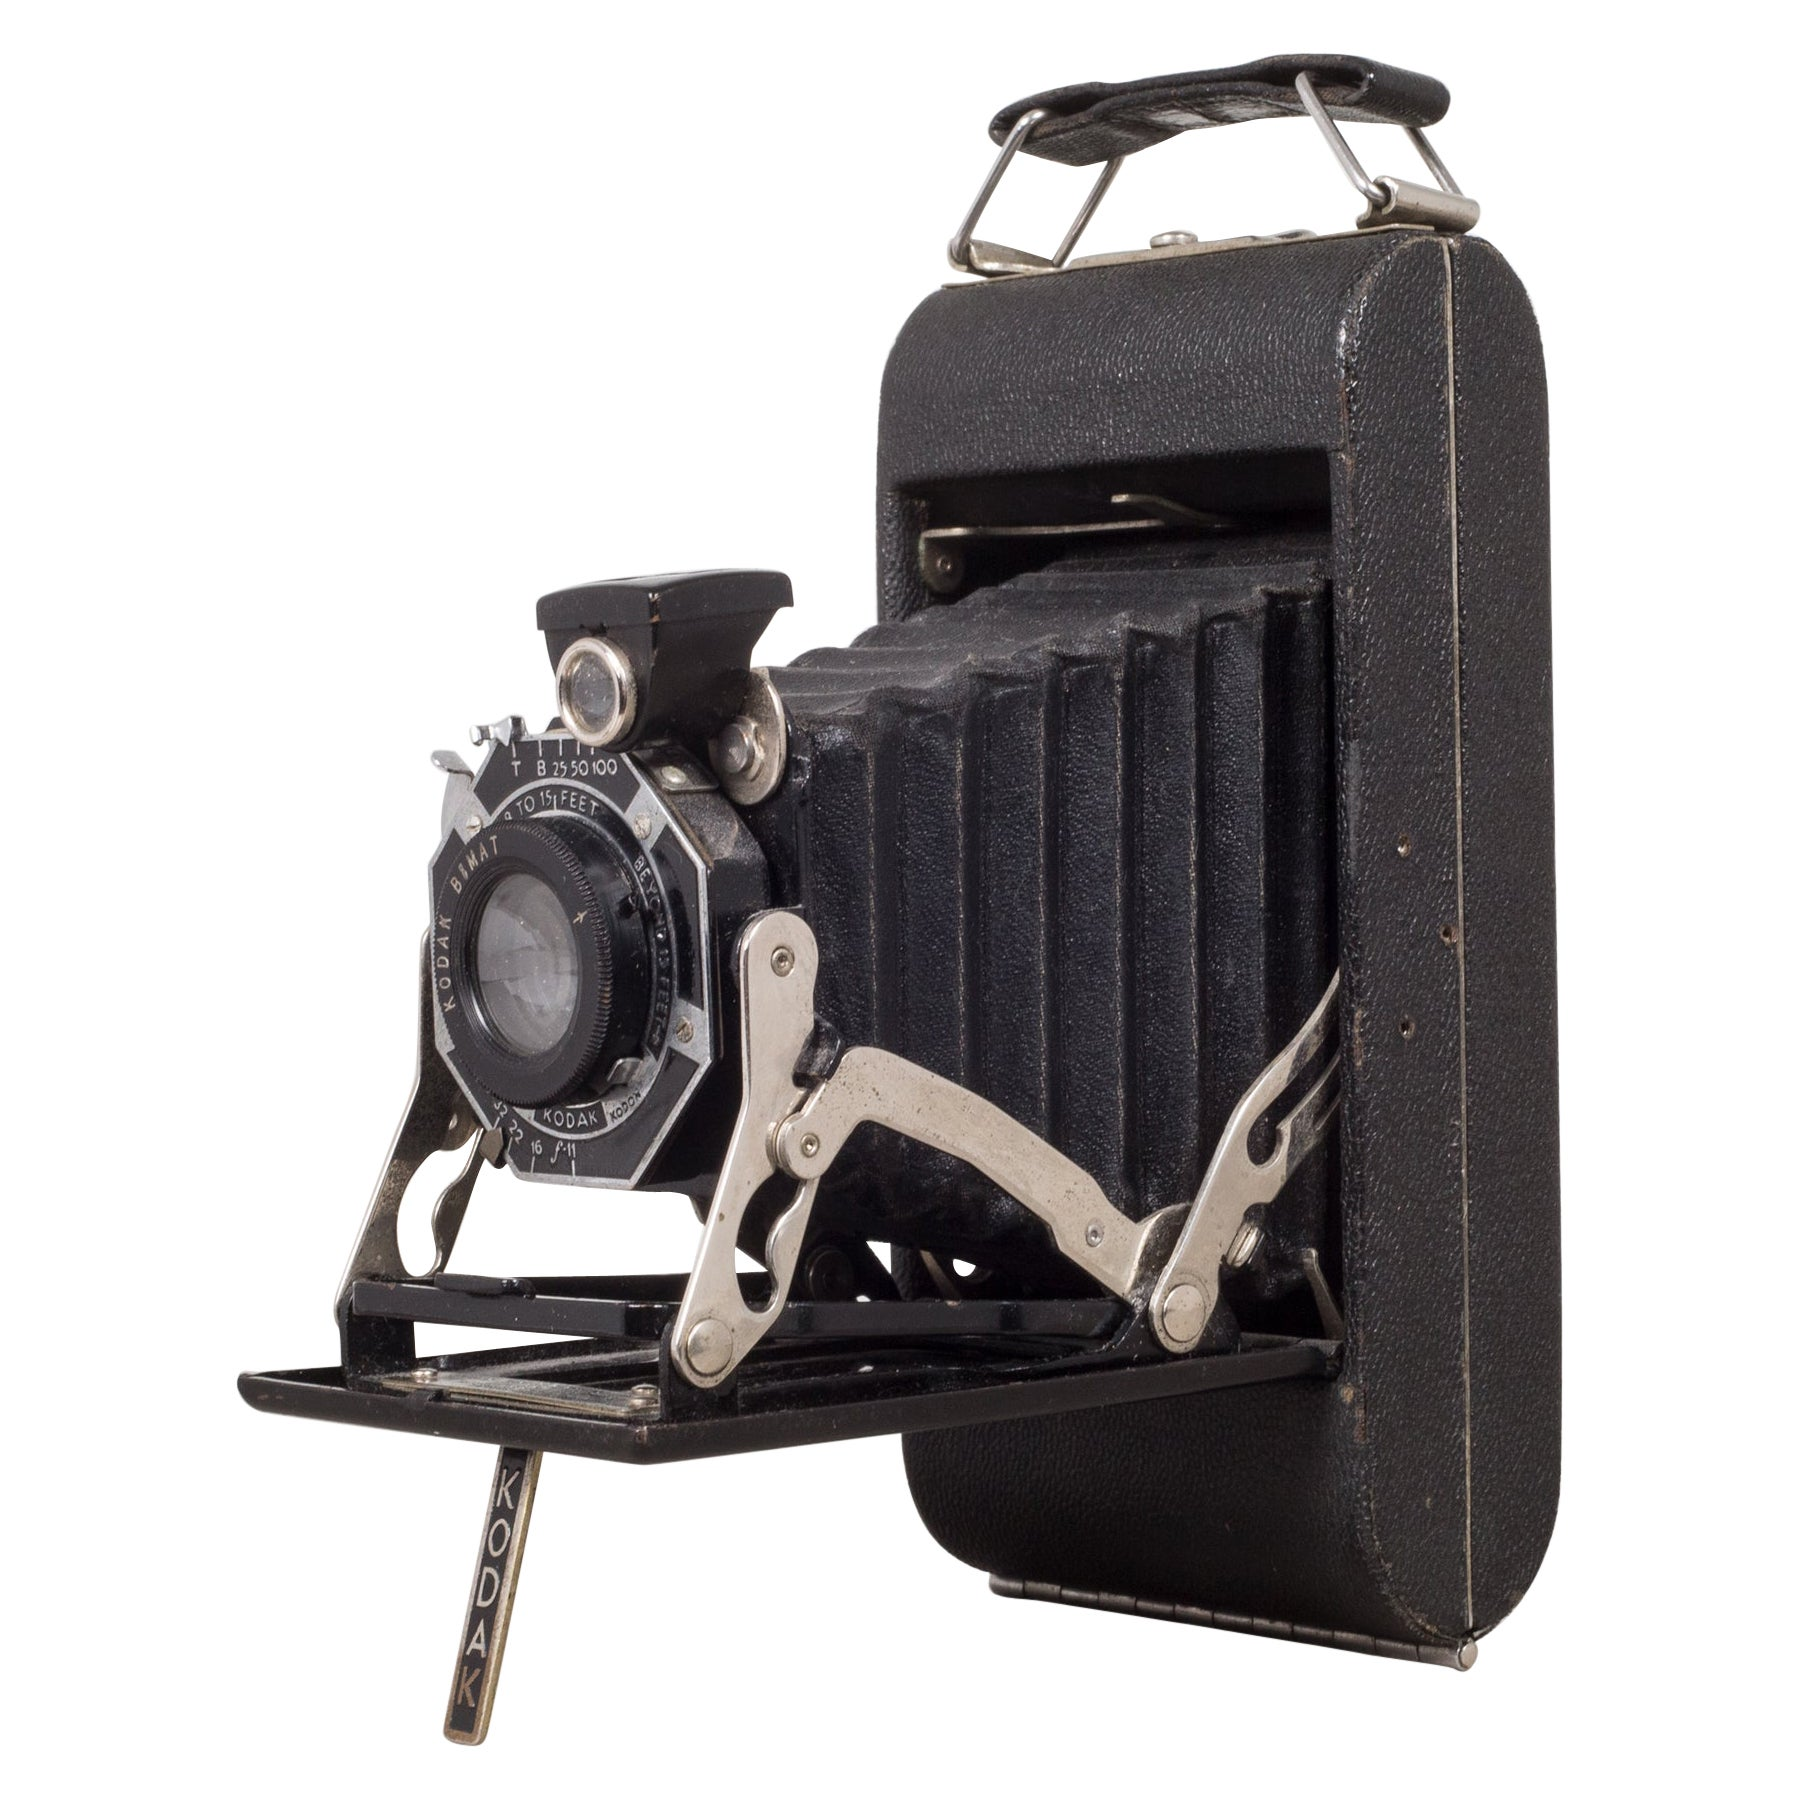 Antique Kodak Jr. Six-16 Series ll Folding Camera, circa 1937-1940